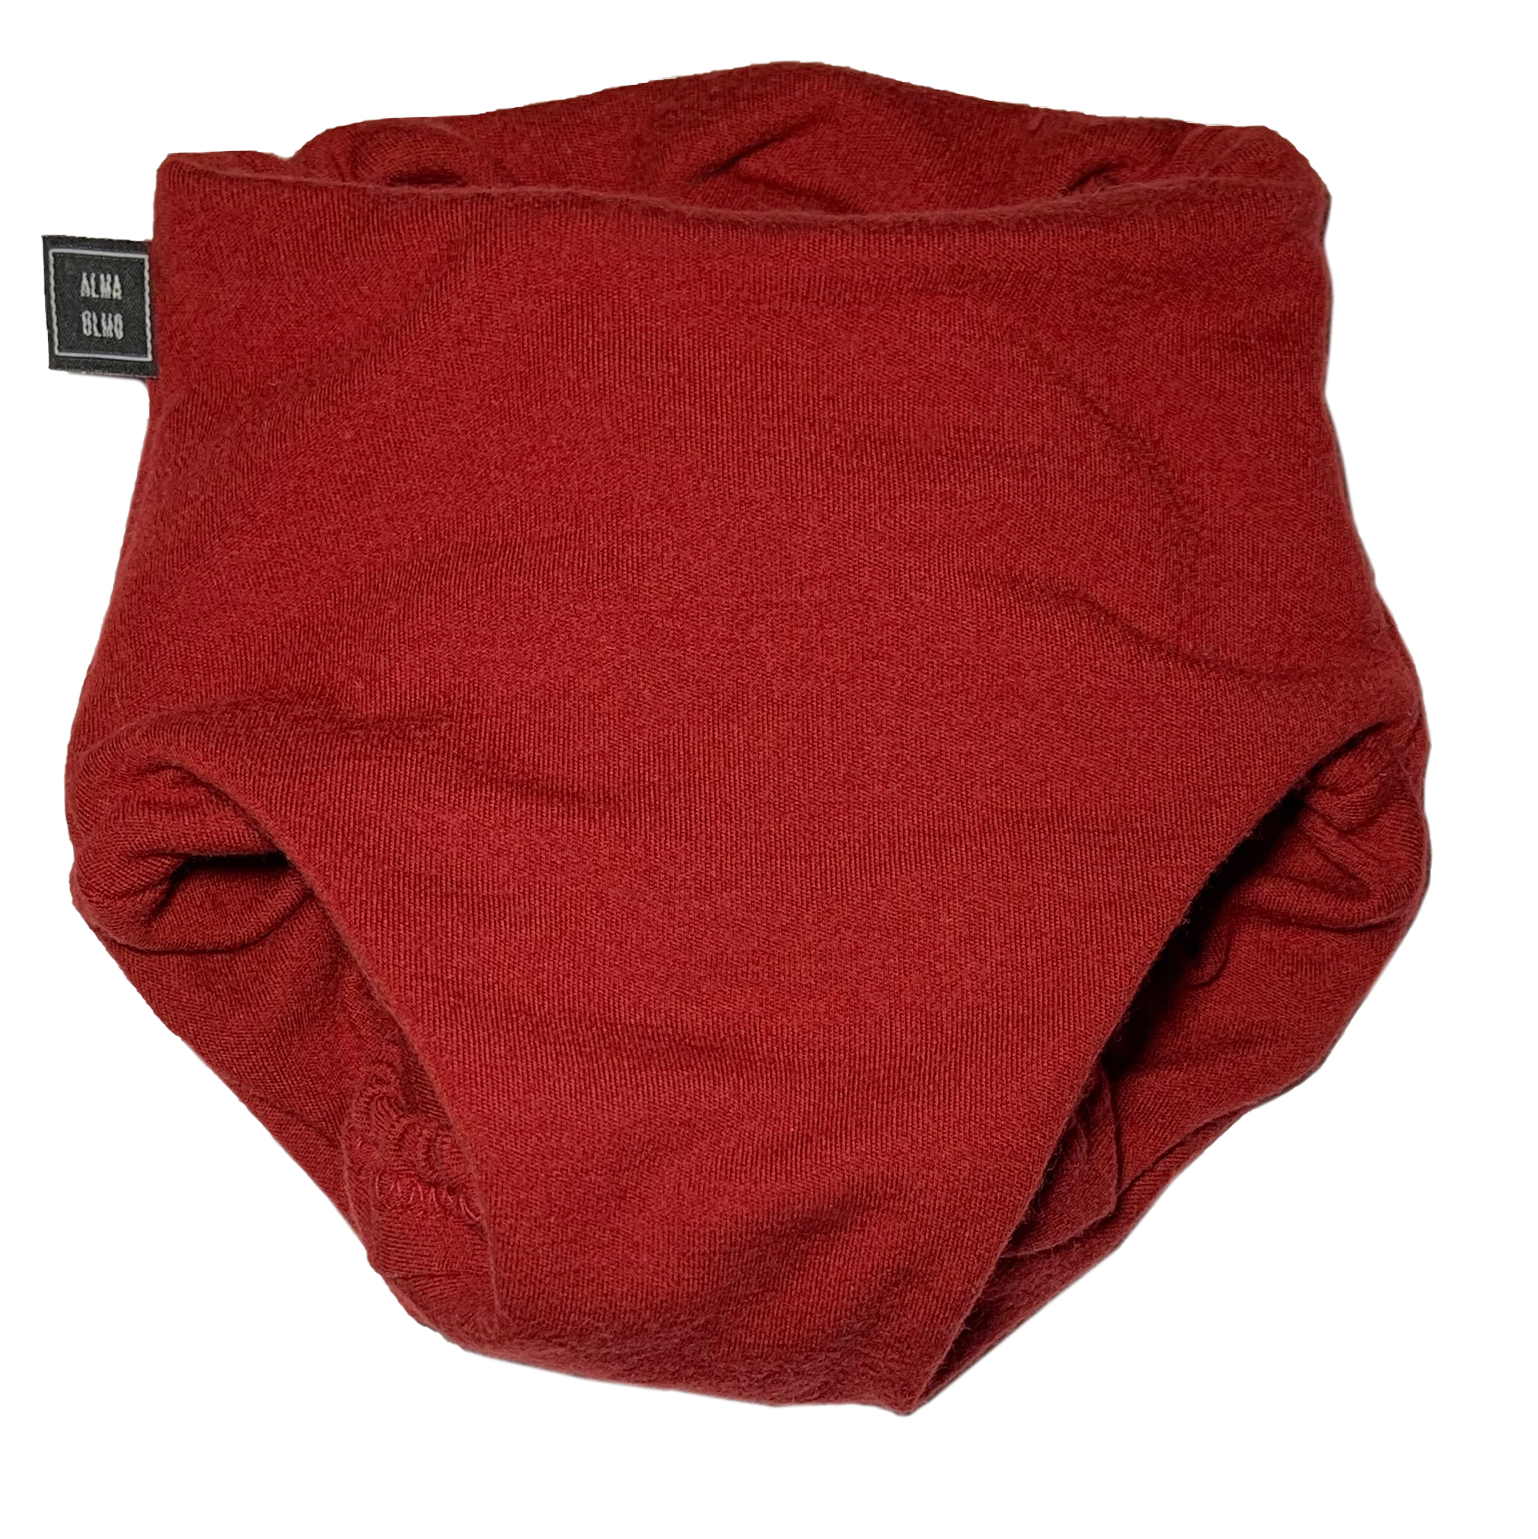 red pull up nappy picture taken from the front